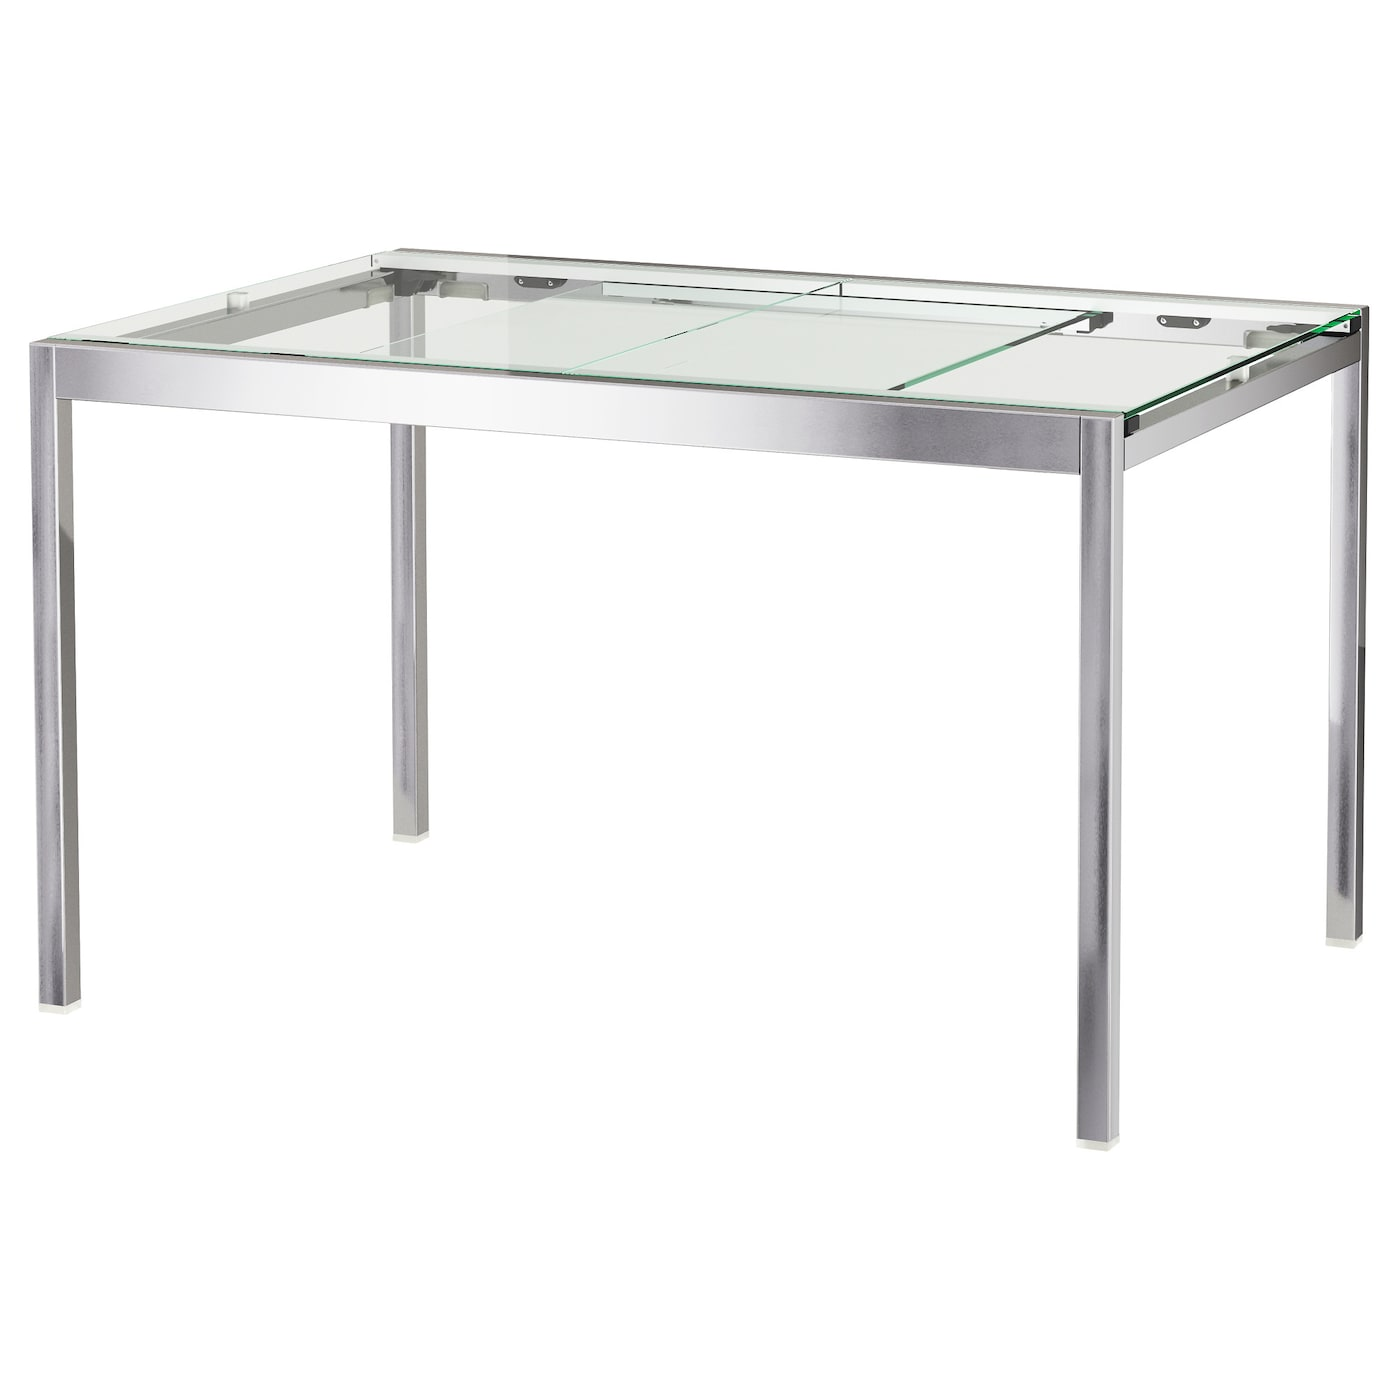 Ikea dining tables ikea ireland dublin - Table a manger transparente ...